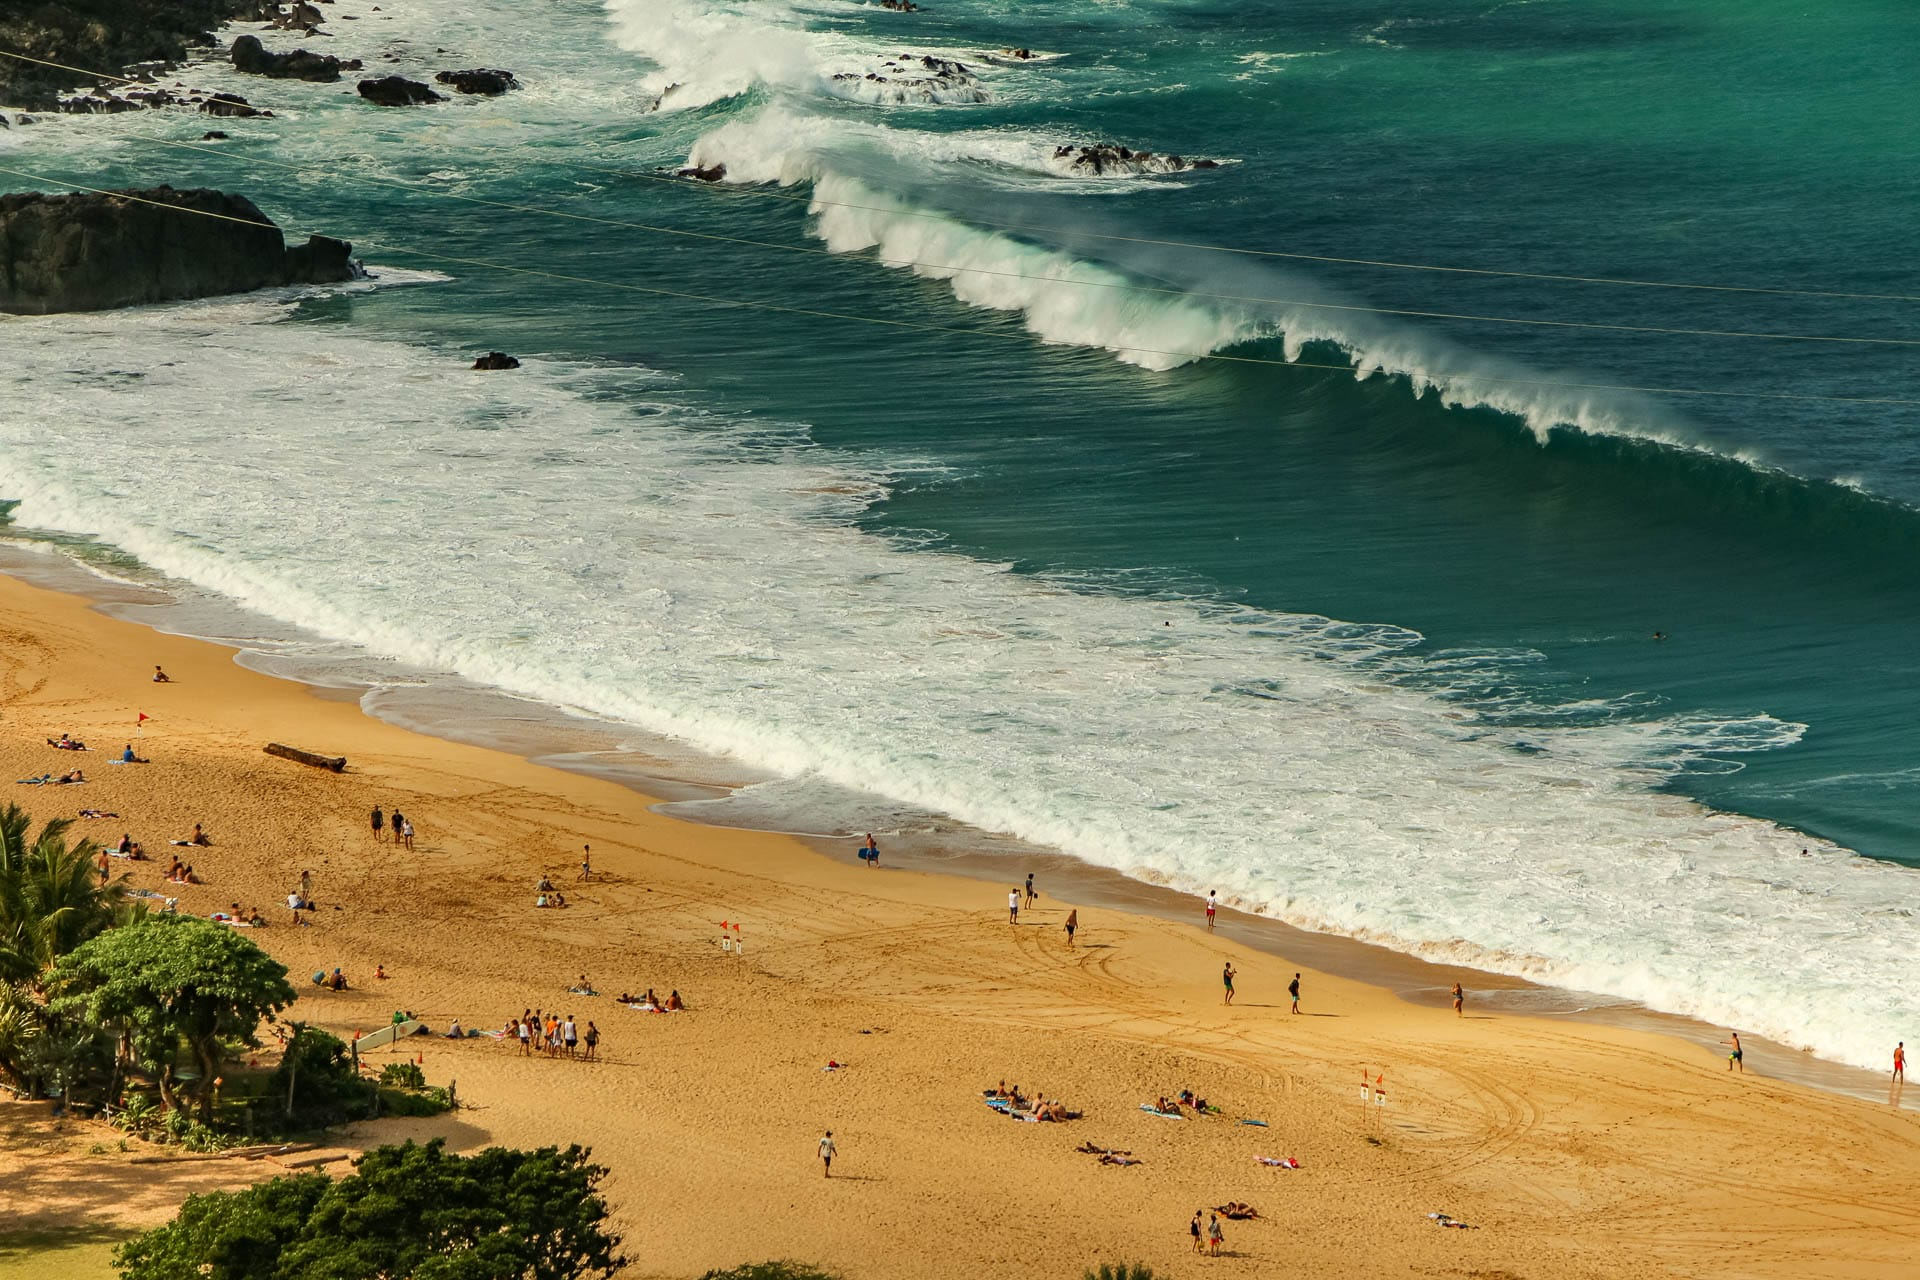 Waimea Bay Beach Overlook Waves and People